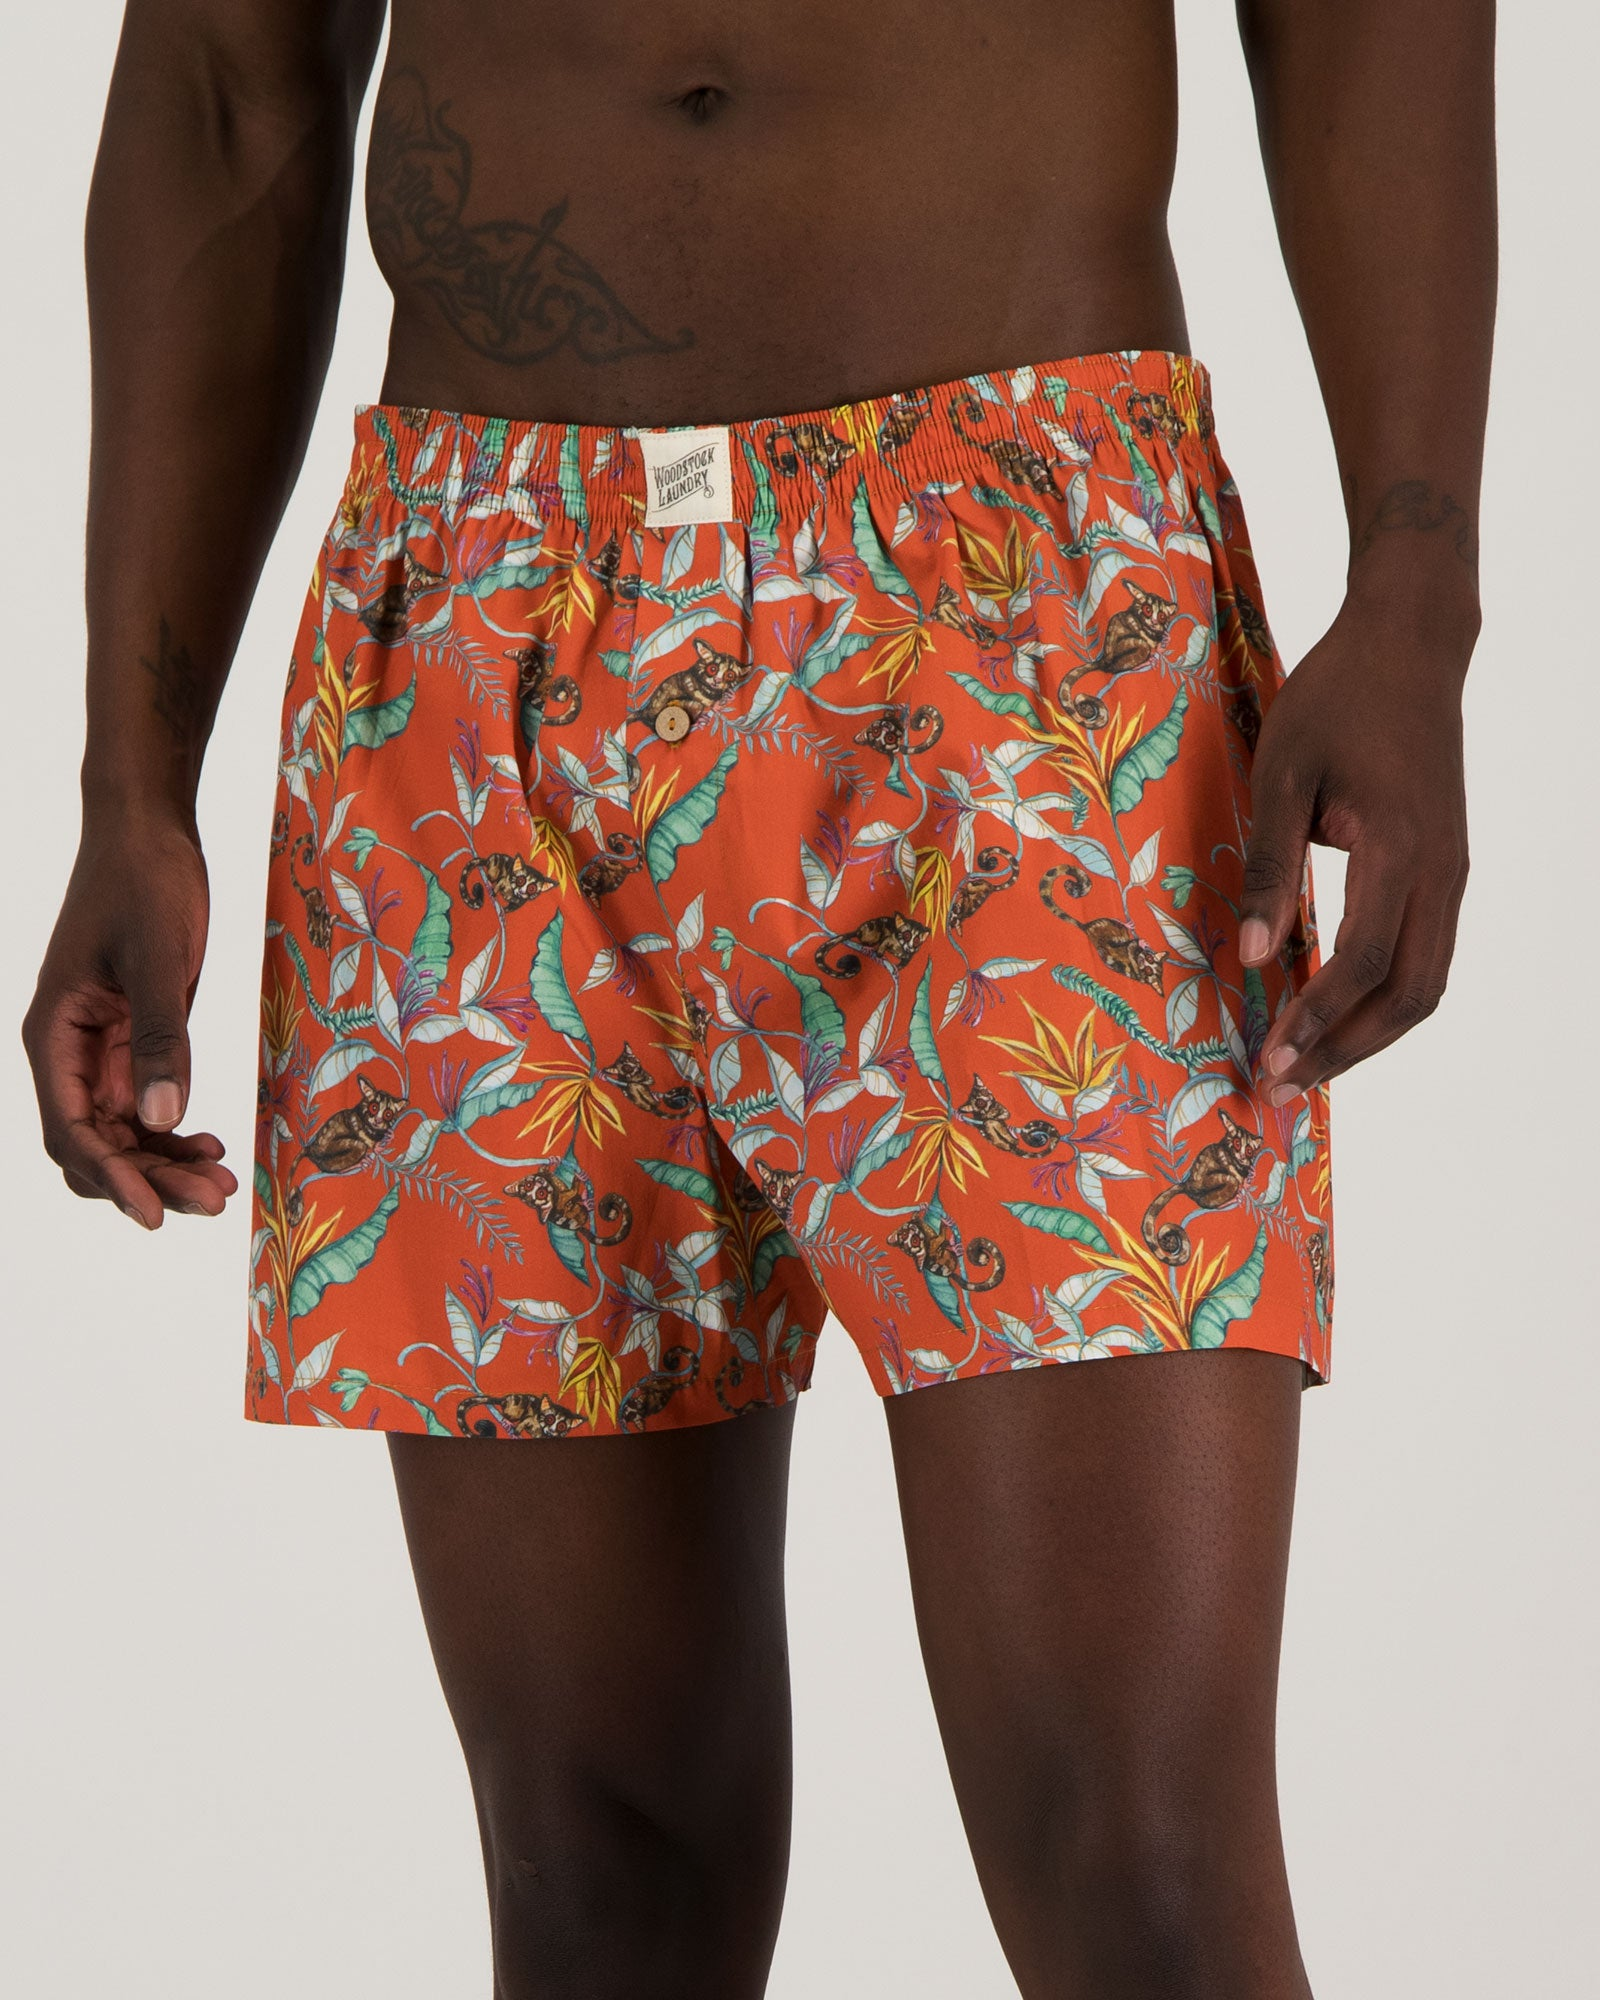 Mens Boxer Shorts - Nag Apies Orange